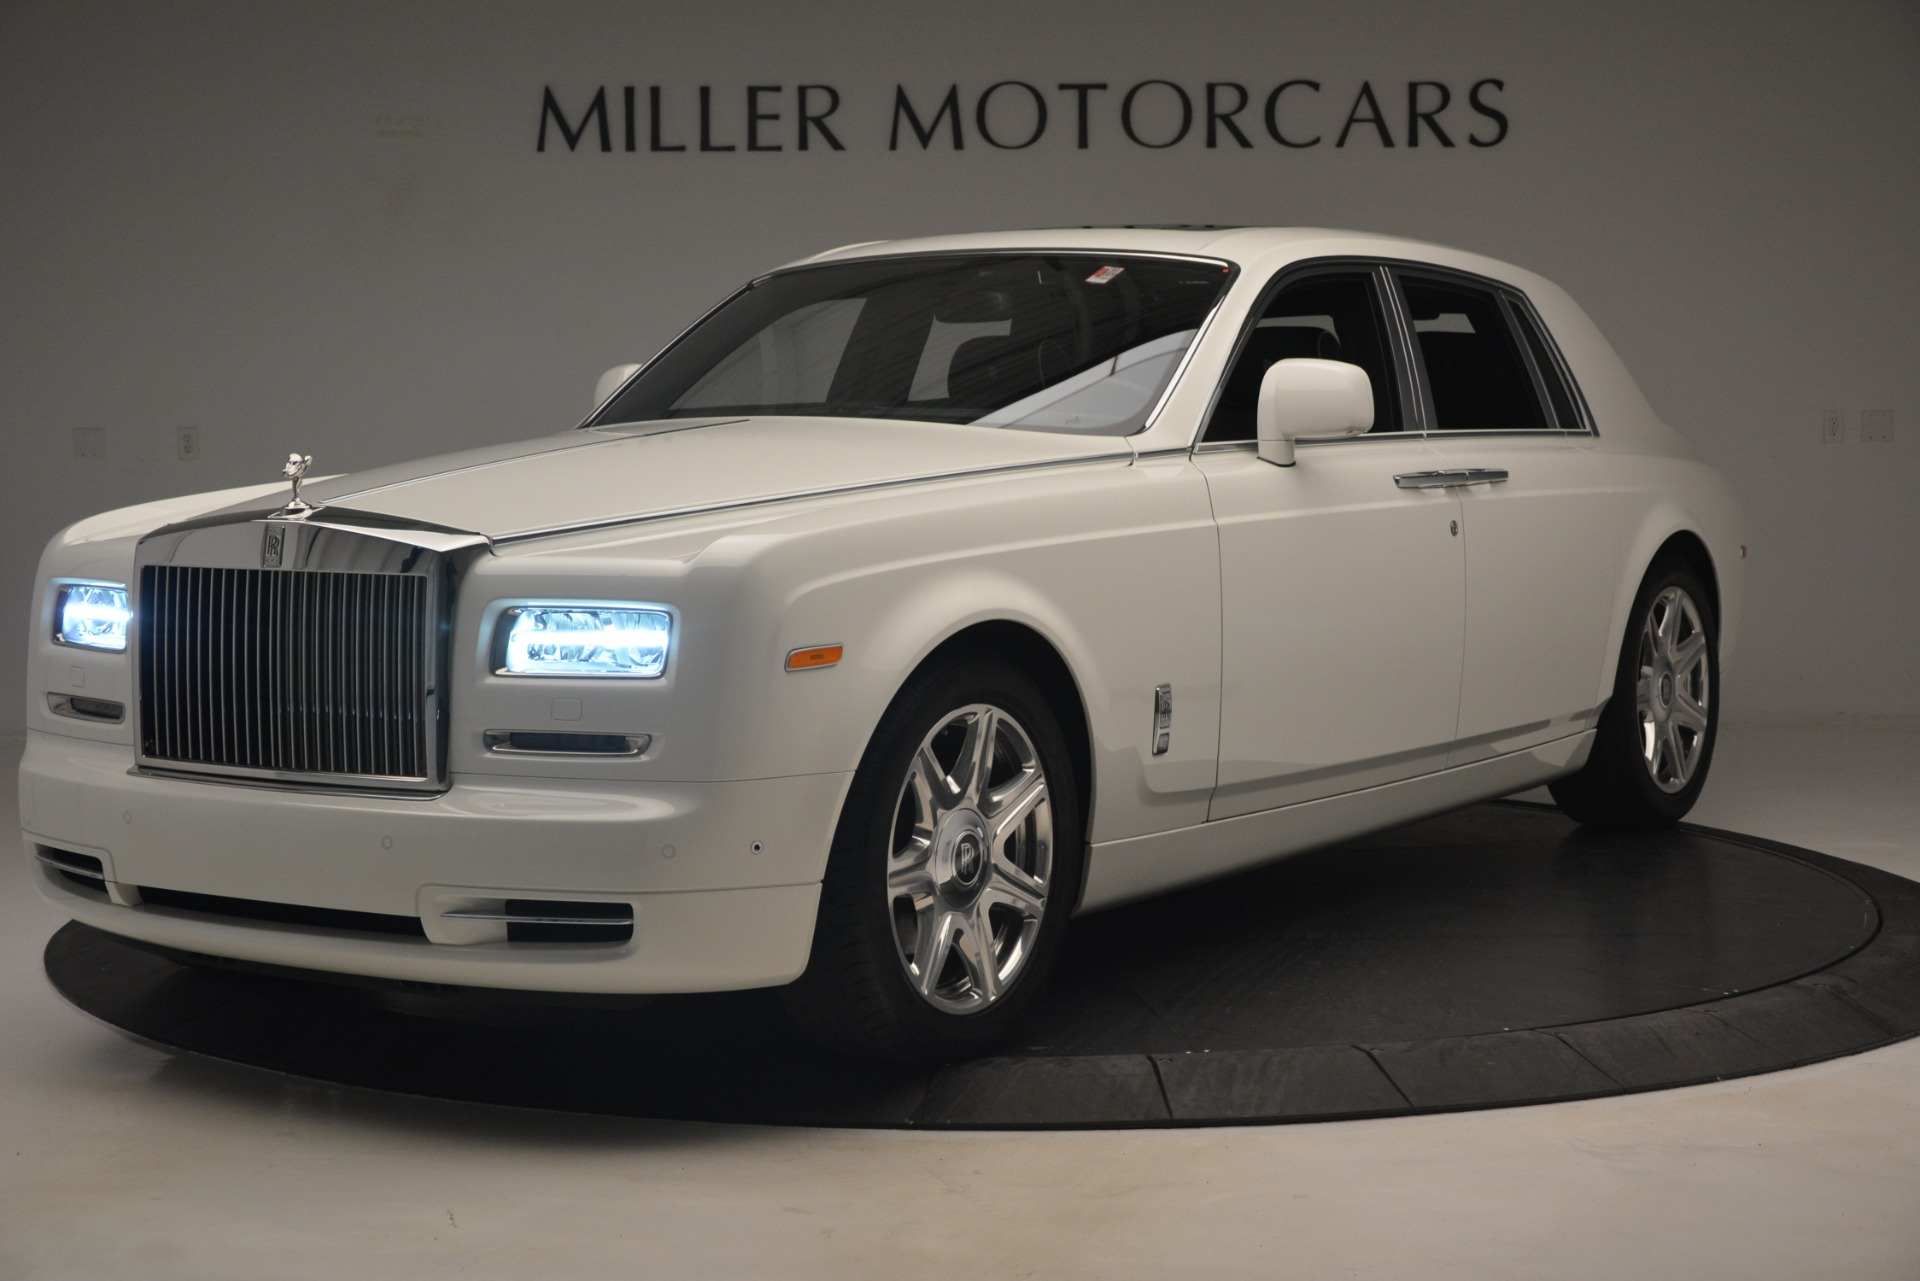 Used 2014 Rolls-Royce Phantom for sale Sold at McLaren Greenwich in Greenwich CT 06830 1